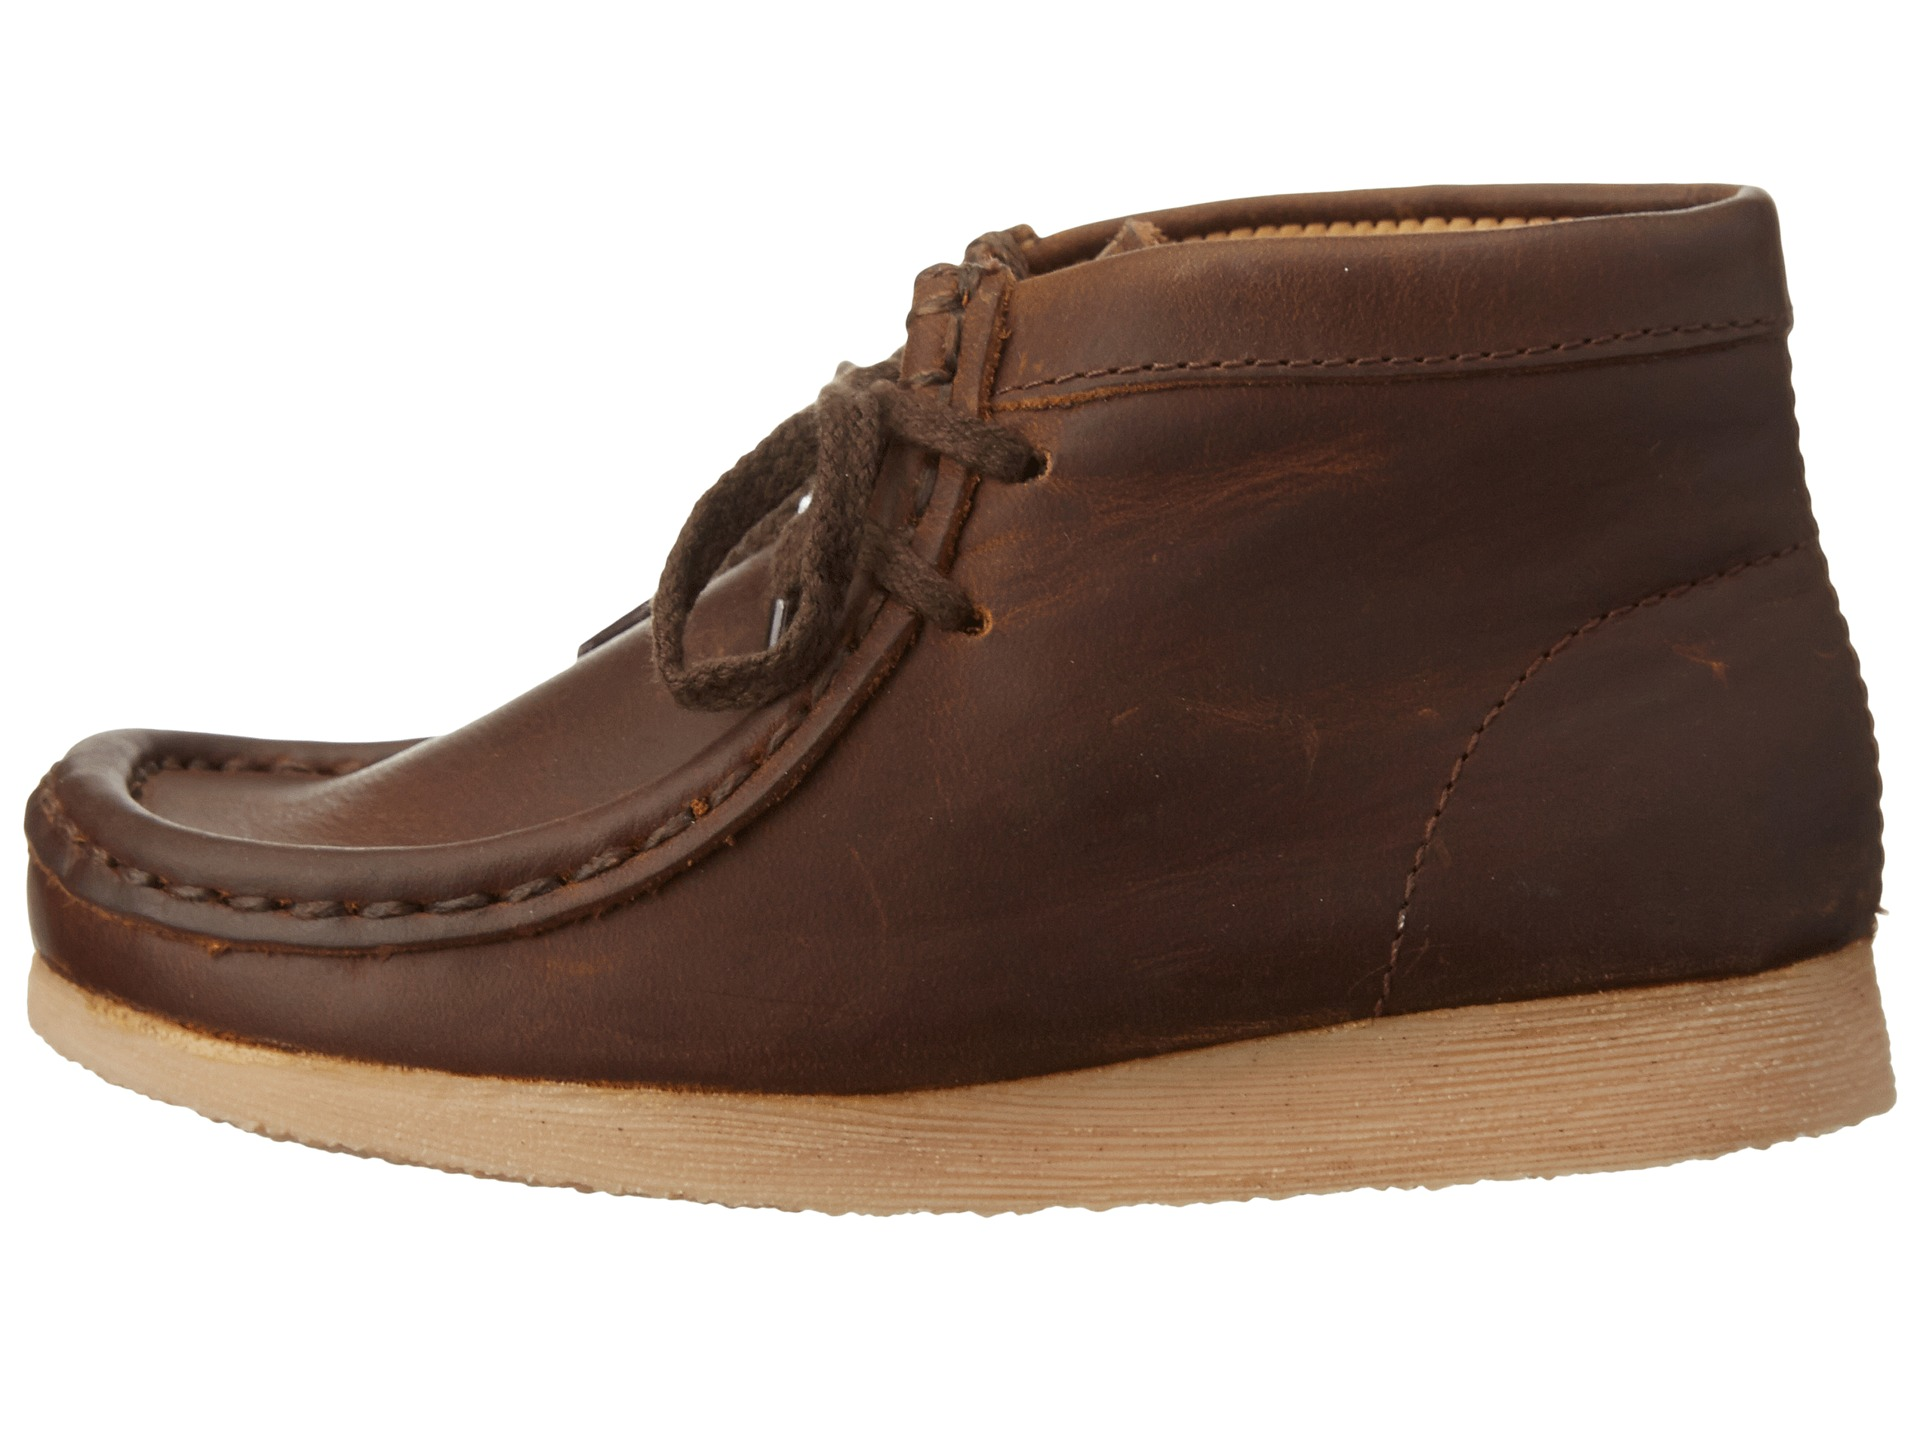 Clarks Kids Wallabee (Toddler) - Zappos.com Free Shipping ...